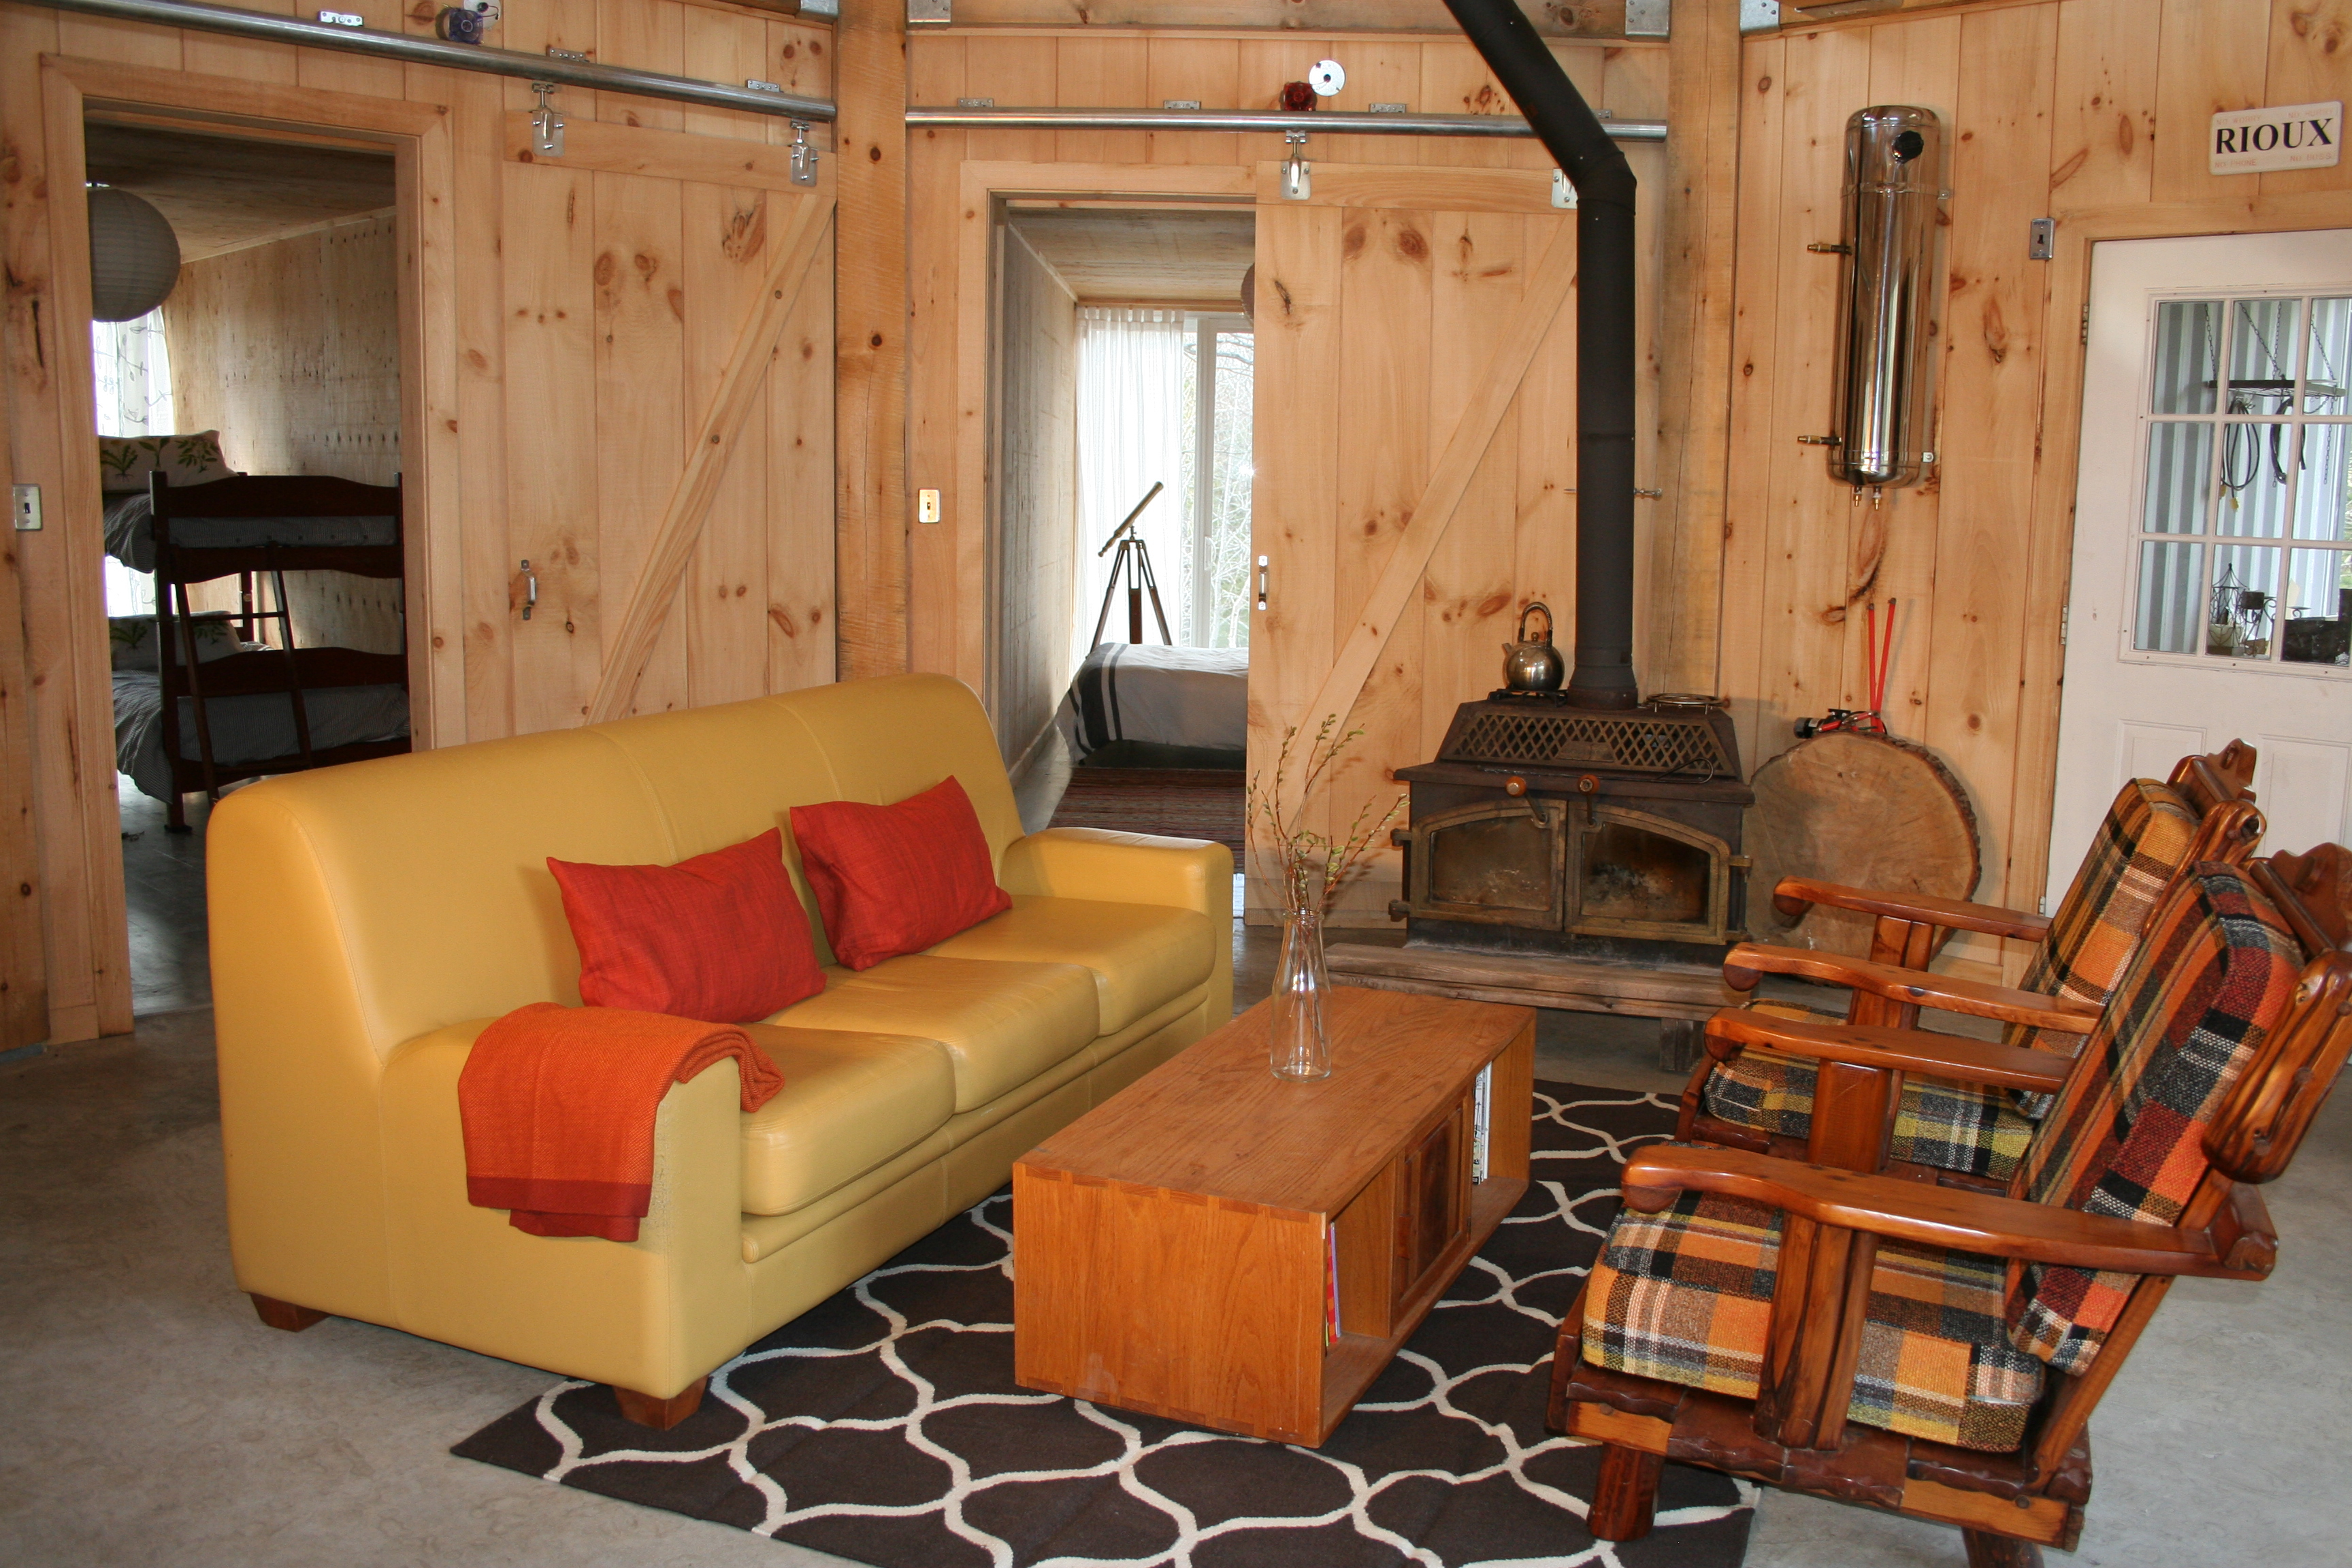 Shipping Container House Interior. Sea Container Cabin Interior Rebecca Purdy Cottage Life features our Cozy Shipping